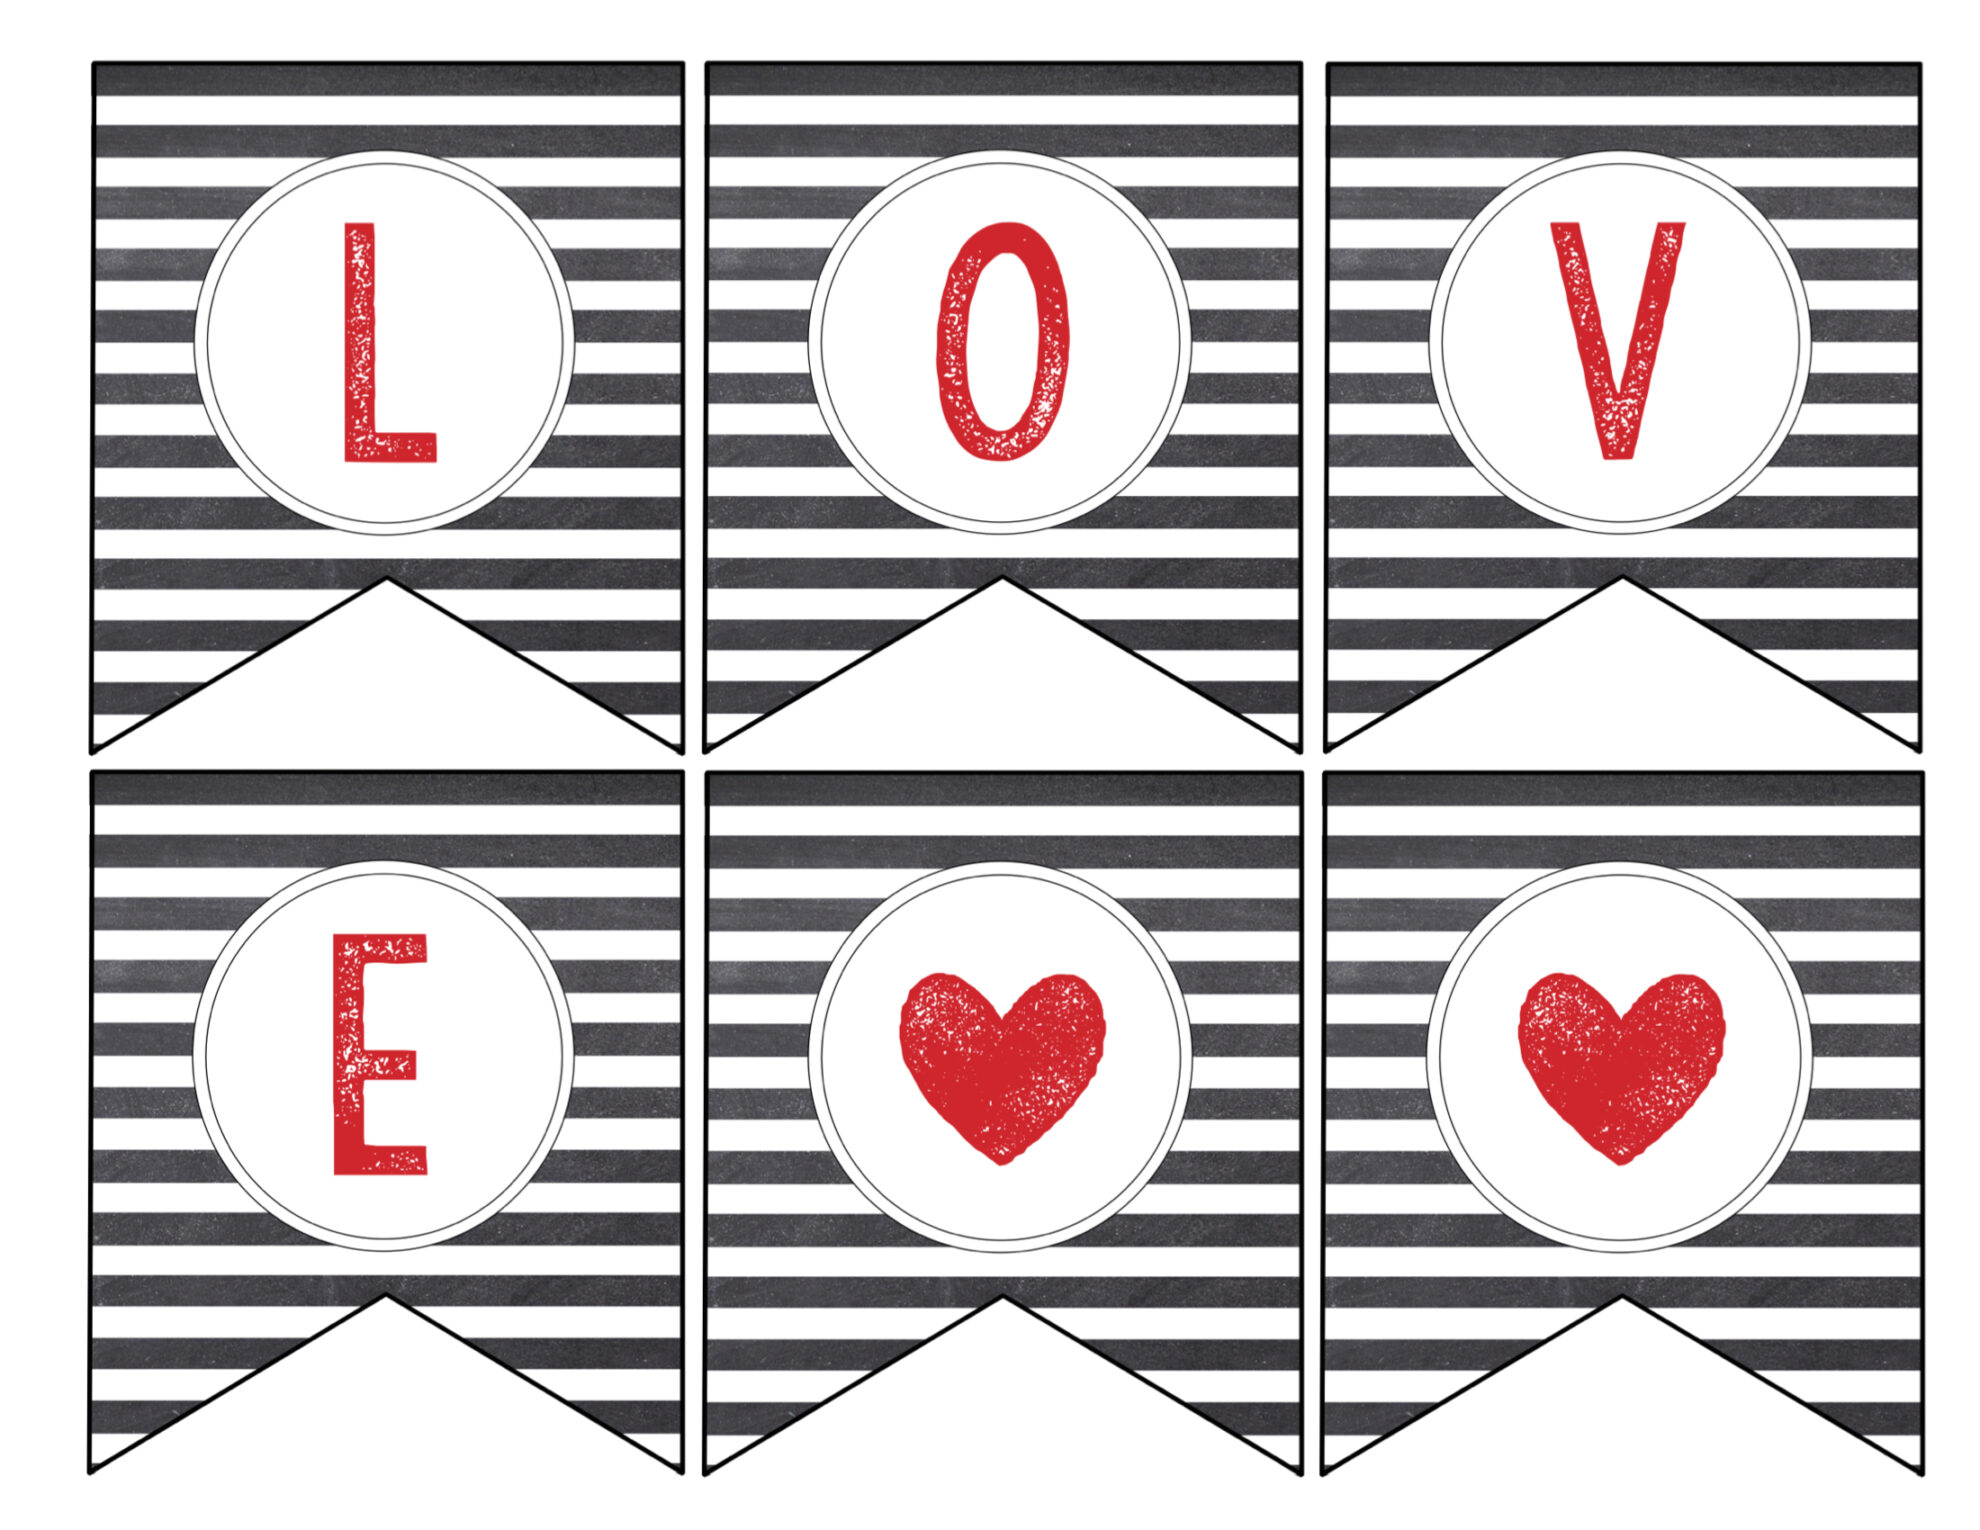 Free Printable Love Banner & Matching Print  Paper Trail. Musky Decals. Parks And Recreation Murals. Kidney Cancer Signs. Ceiling Wall Stickers. Cookie Logo. Superhero Wall Murals. Wedding Ring Decals. Blade And Soul Logo